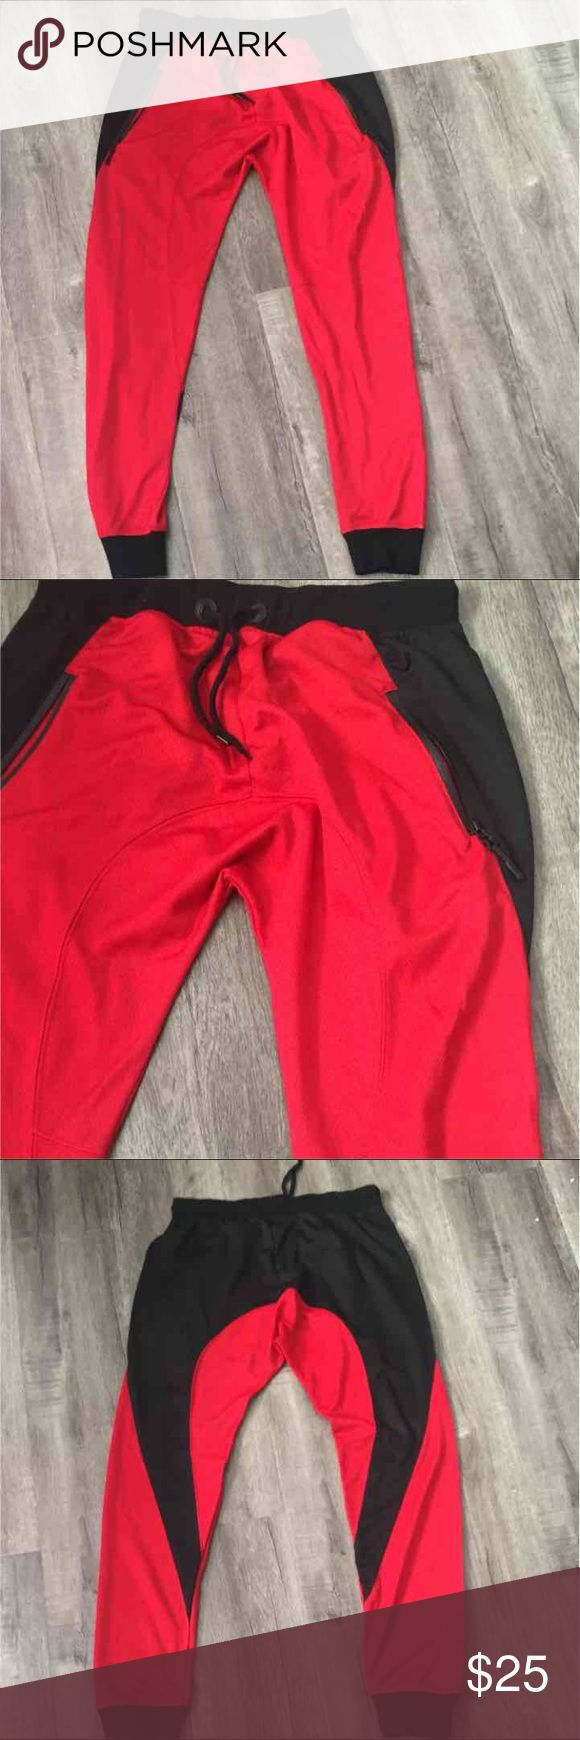 "NWOT Men's jogger harem pants Never worn waist 14"" with lots of stretch inseam 29"" has harem drop crotch also has zippered pockets bought from Tilly's.... perfect pants to wear with your Jordan low top 11 breds JS Tilly's Pants Sweatpants & Joggers"